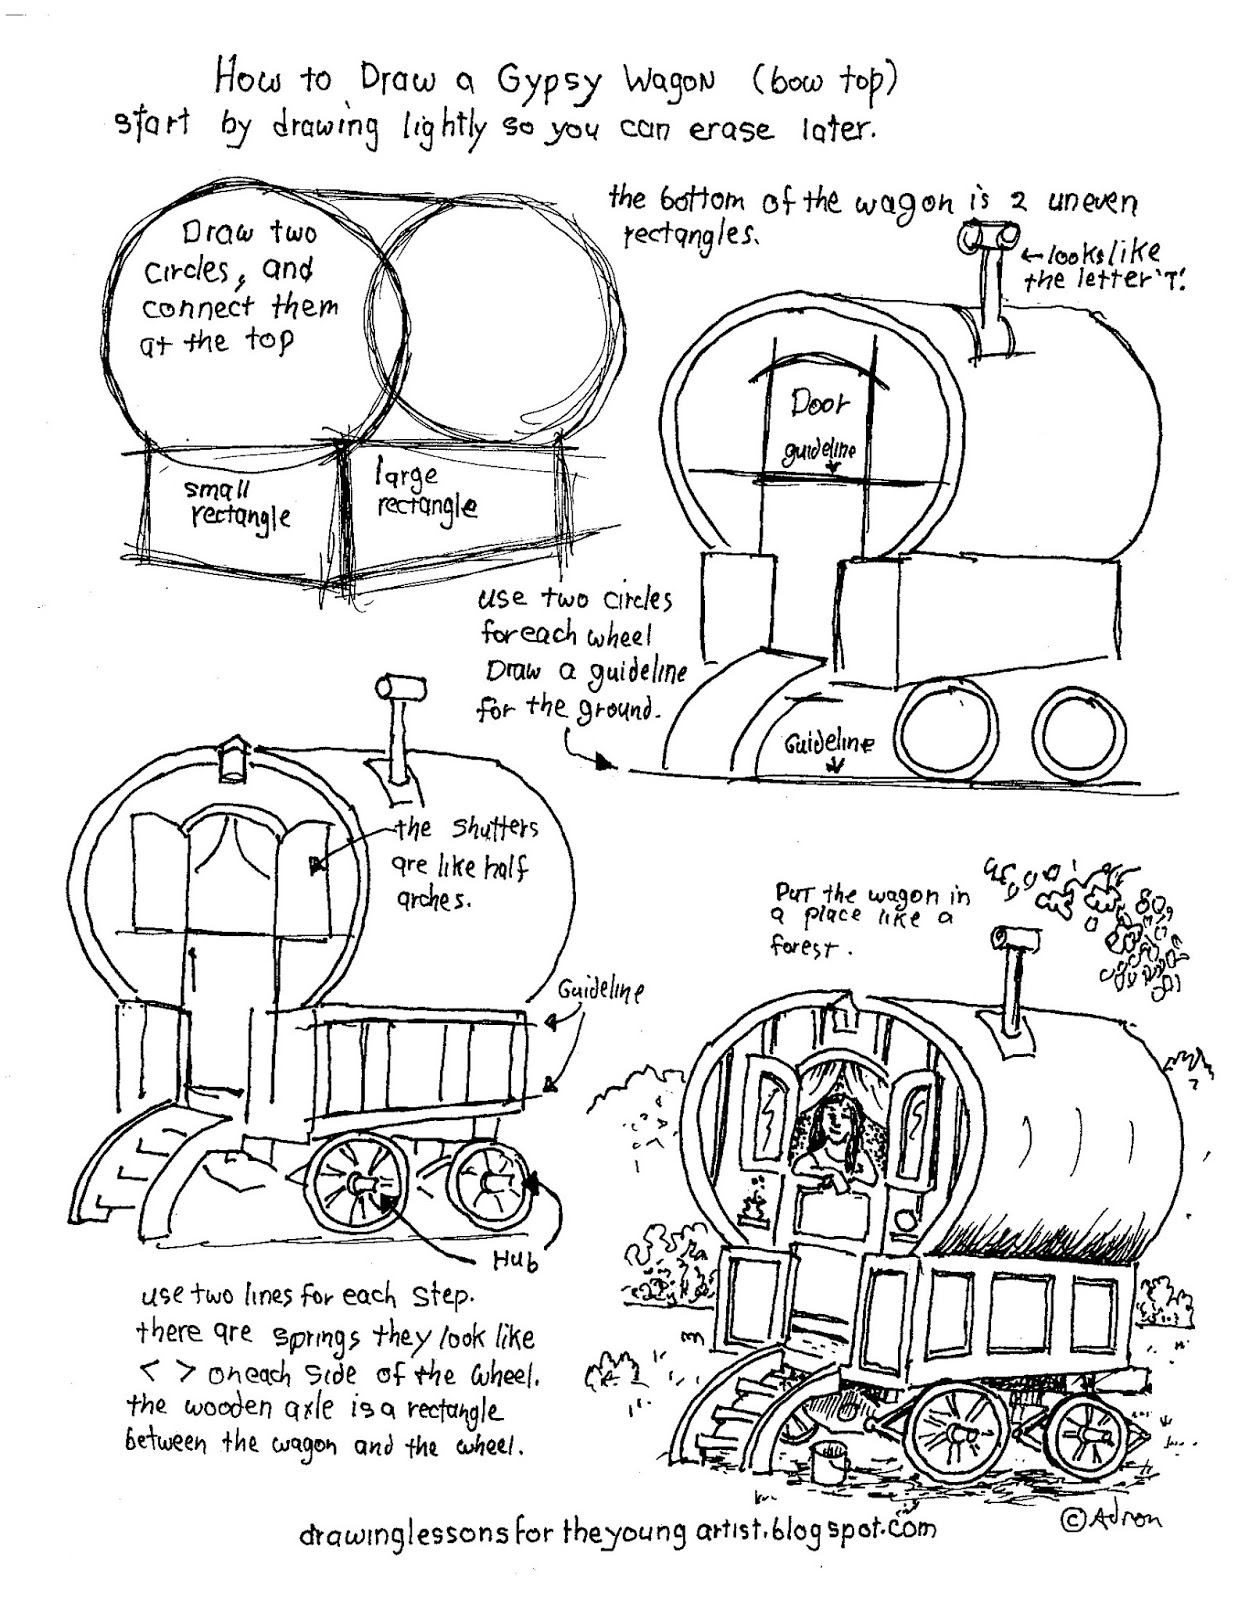 worksheet Draw The Other Half Of The Picture Worksheet how to draw worksheets for the young artist printable a gypsy wagon worksheet